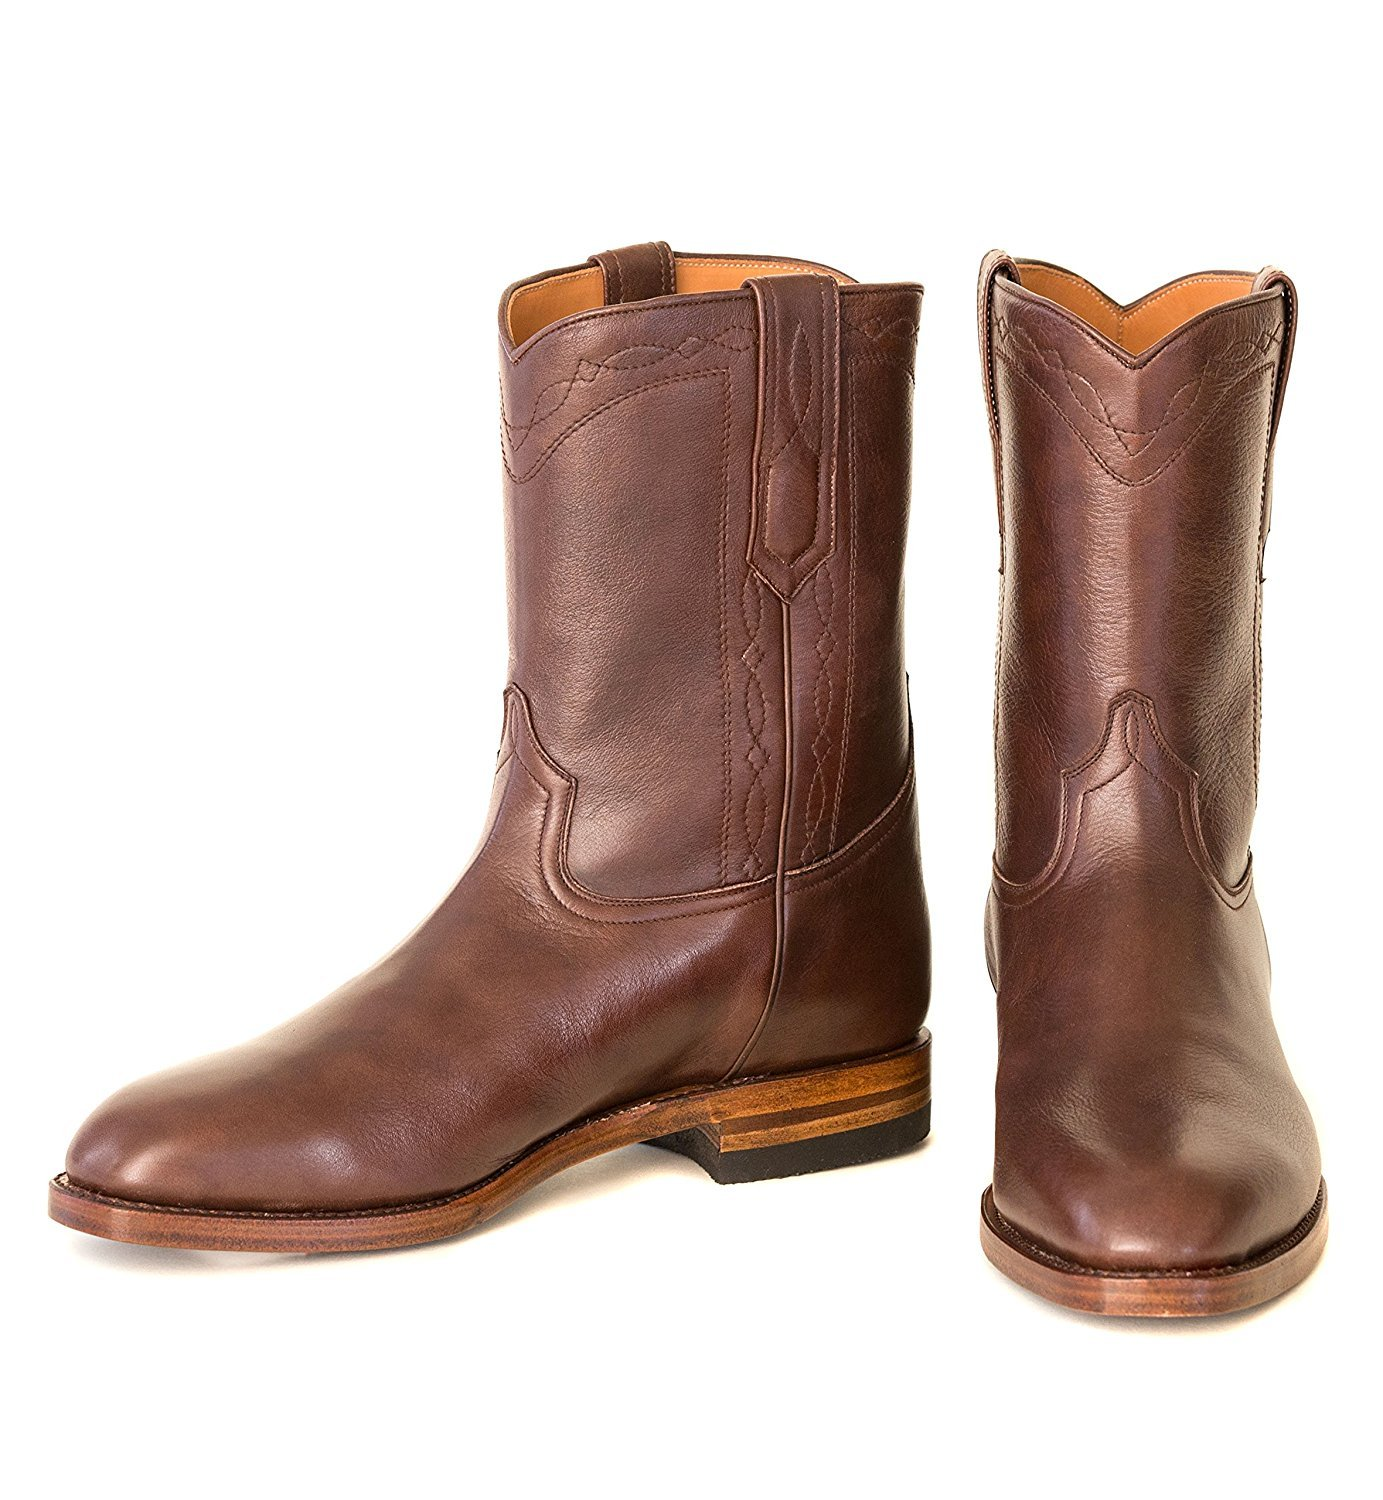 Ranch Road Boots Men's Bexar Cowboy Boot With Roper Heel US 13 Brown by Ranch Road Boots (Image #1)